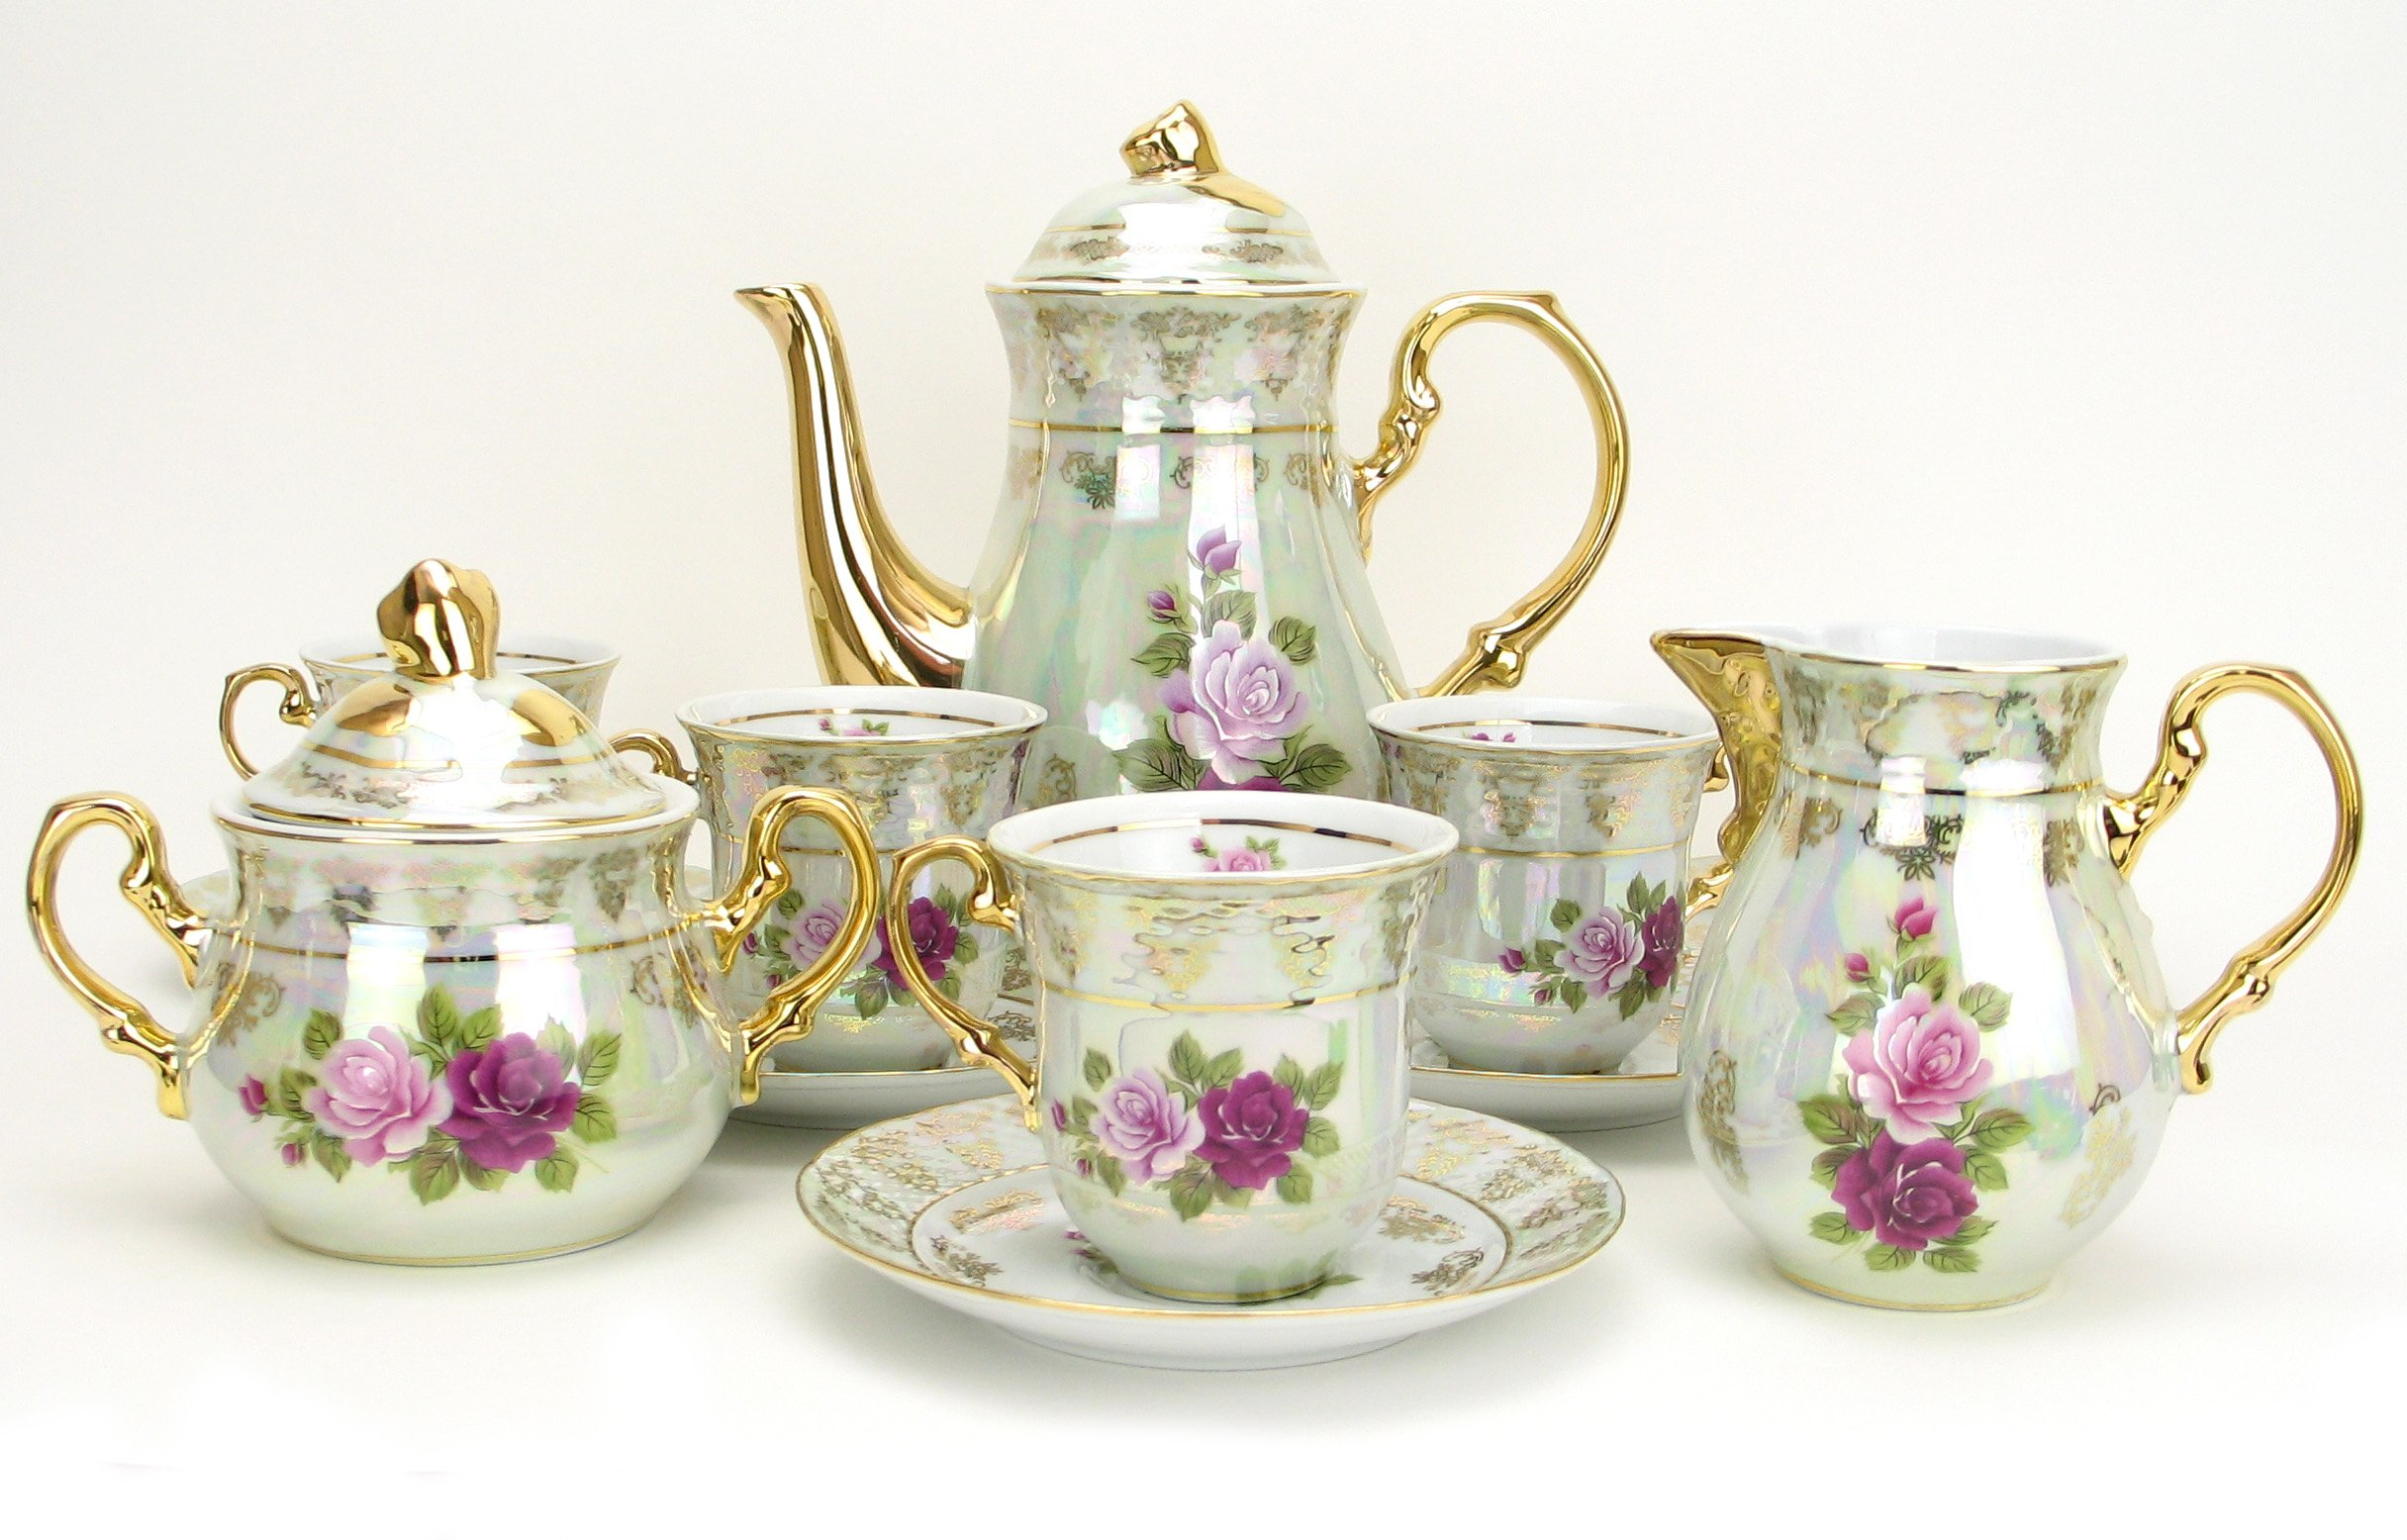 Euro Porcelain 17-Pc. Vintage Pink & Red Roses Tea Cup Coffee Set, White Pearlescent Floral Pattern with 24K Gold-Plated, Complete Service for 6, Original Czech Tableware